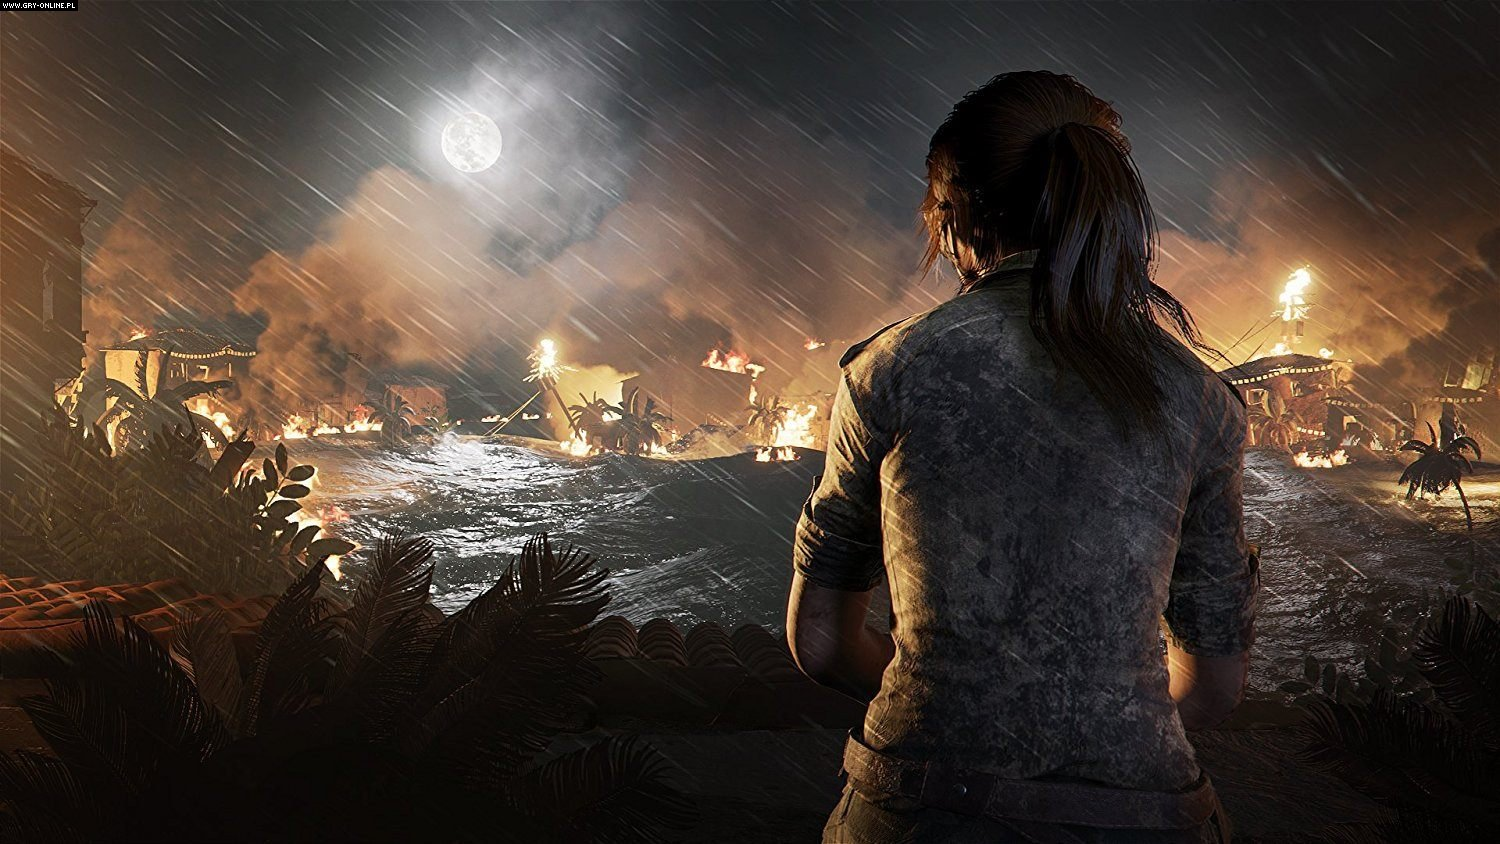 Shadow of the Tomb Raider PC, PS4, XONE Gry Screen 43/52, Eidos Montreal, Square-Enix / Eidos